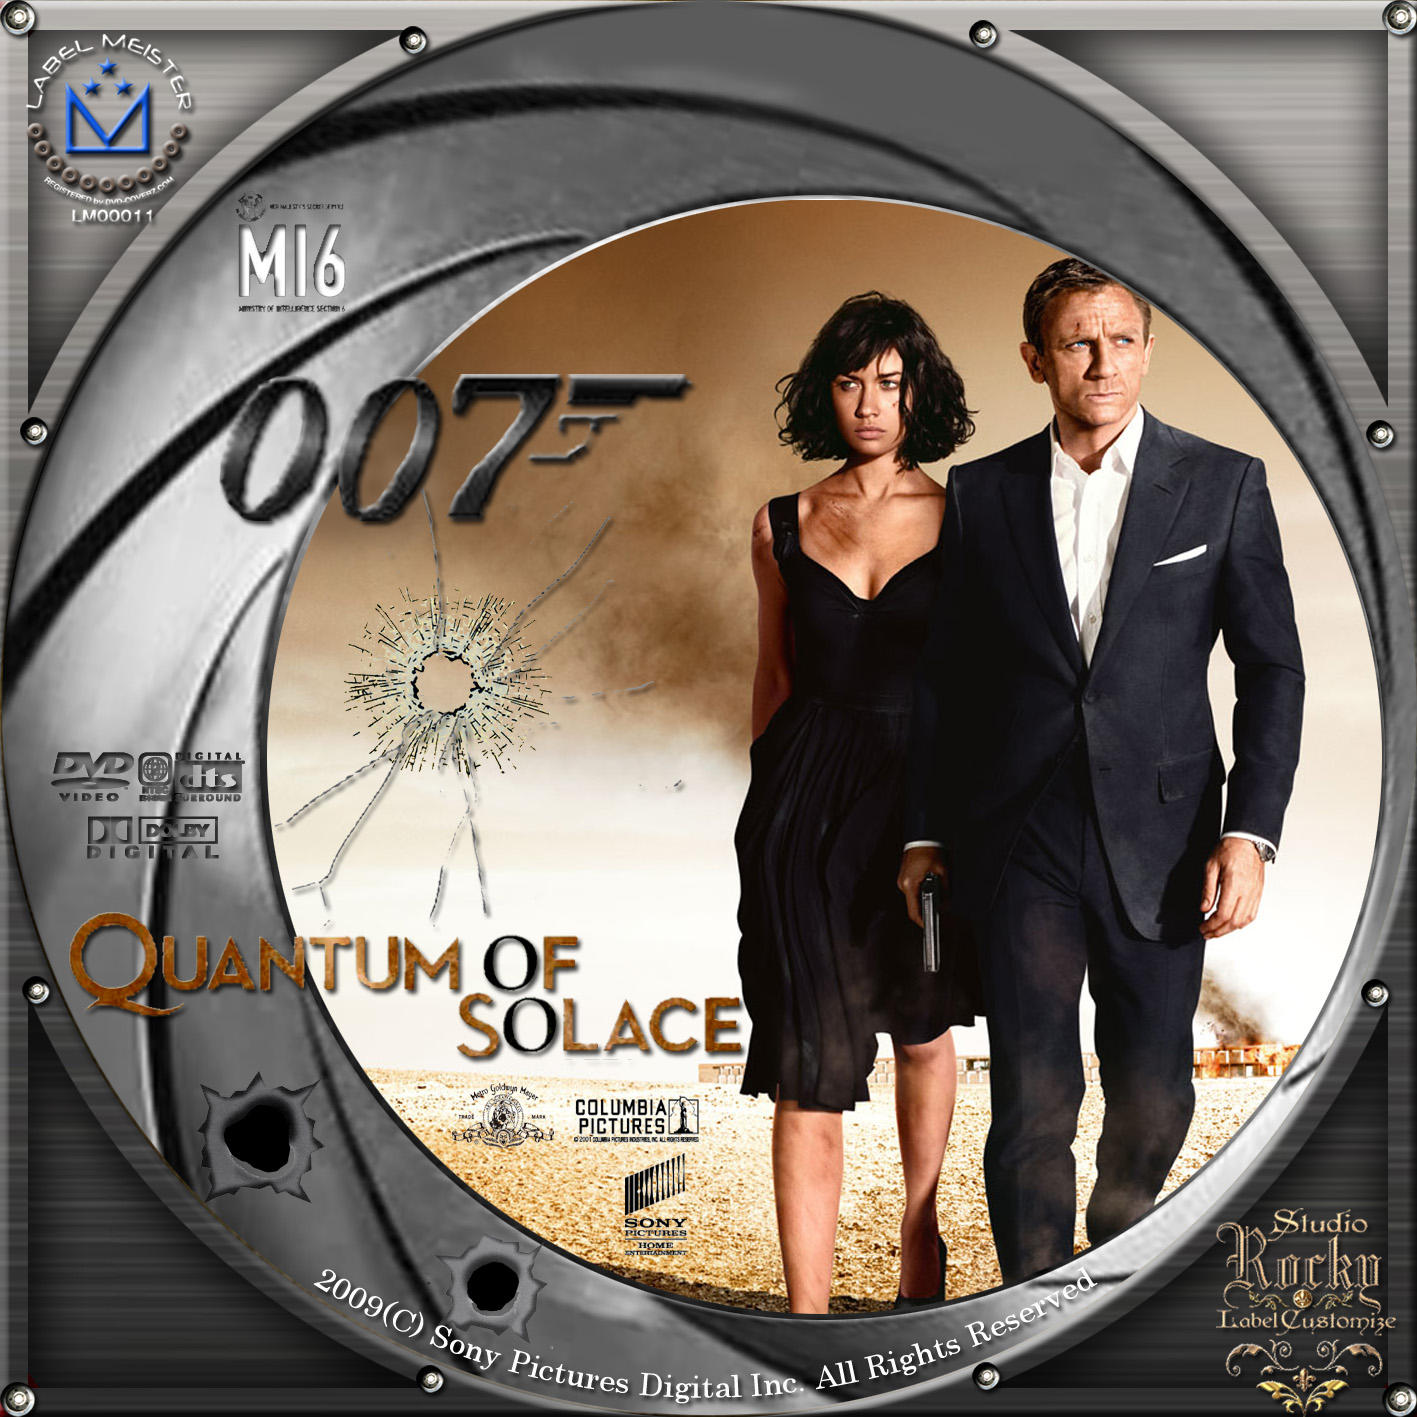 007/慰めの報酬   QUANTUM OF SOLACE